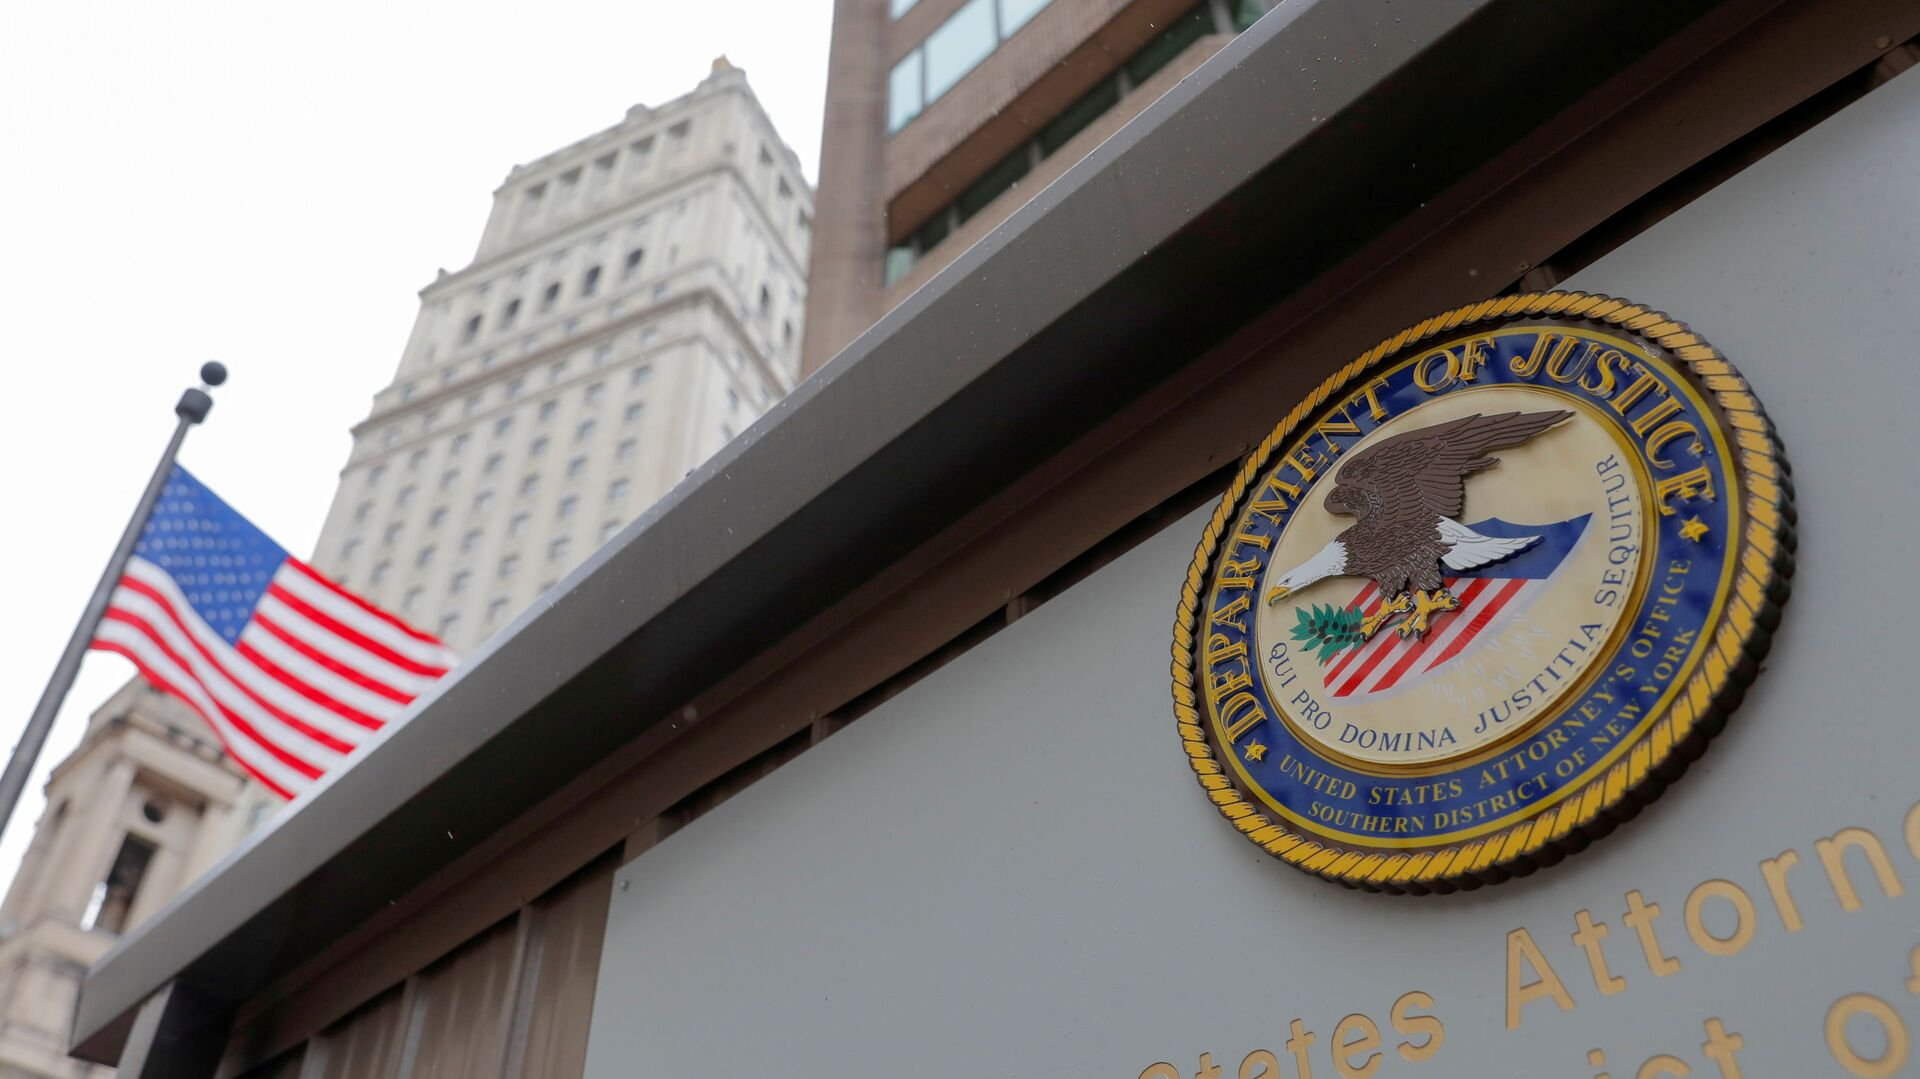 The seal of the United States Department of Justice is seen on the outside of the United States Attorney's Office of the Southern District of New York in Manhattan, New York City, US, on 17 August 2020. - Sputnik International, 1920, 10.08.2021